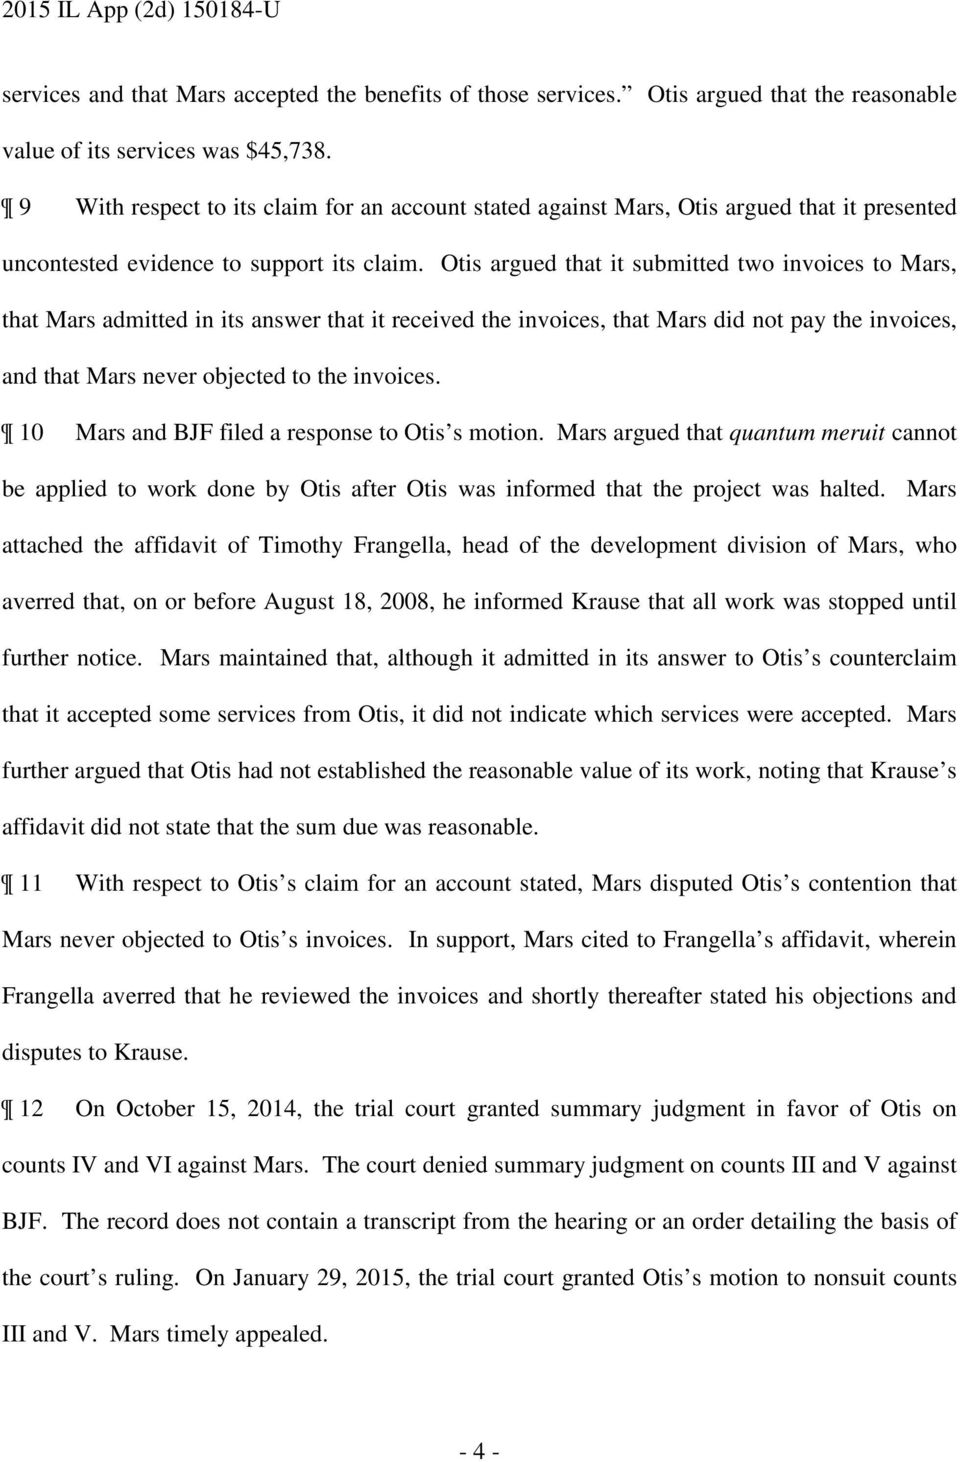 Otis argued that it submitted two invoices to Mars, that Mars admitted in its answer that it received the invoices, that Mars did not pay the invoices, and that Mars never objected to the invoices.